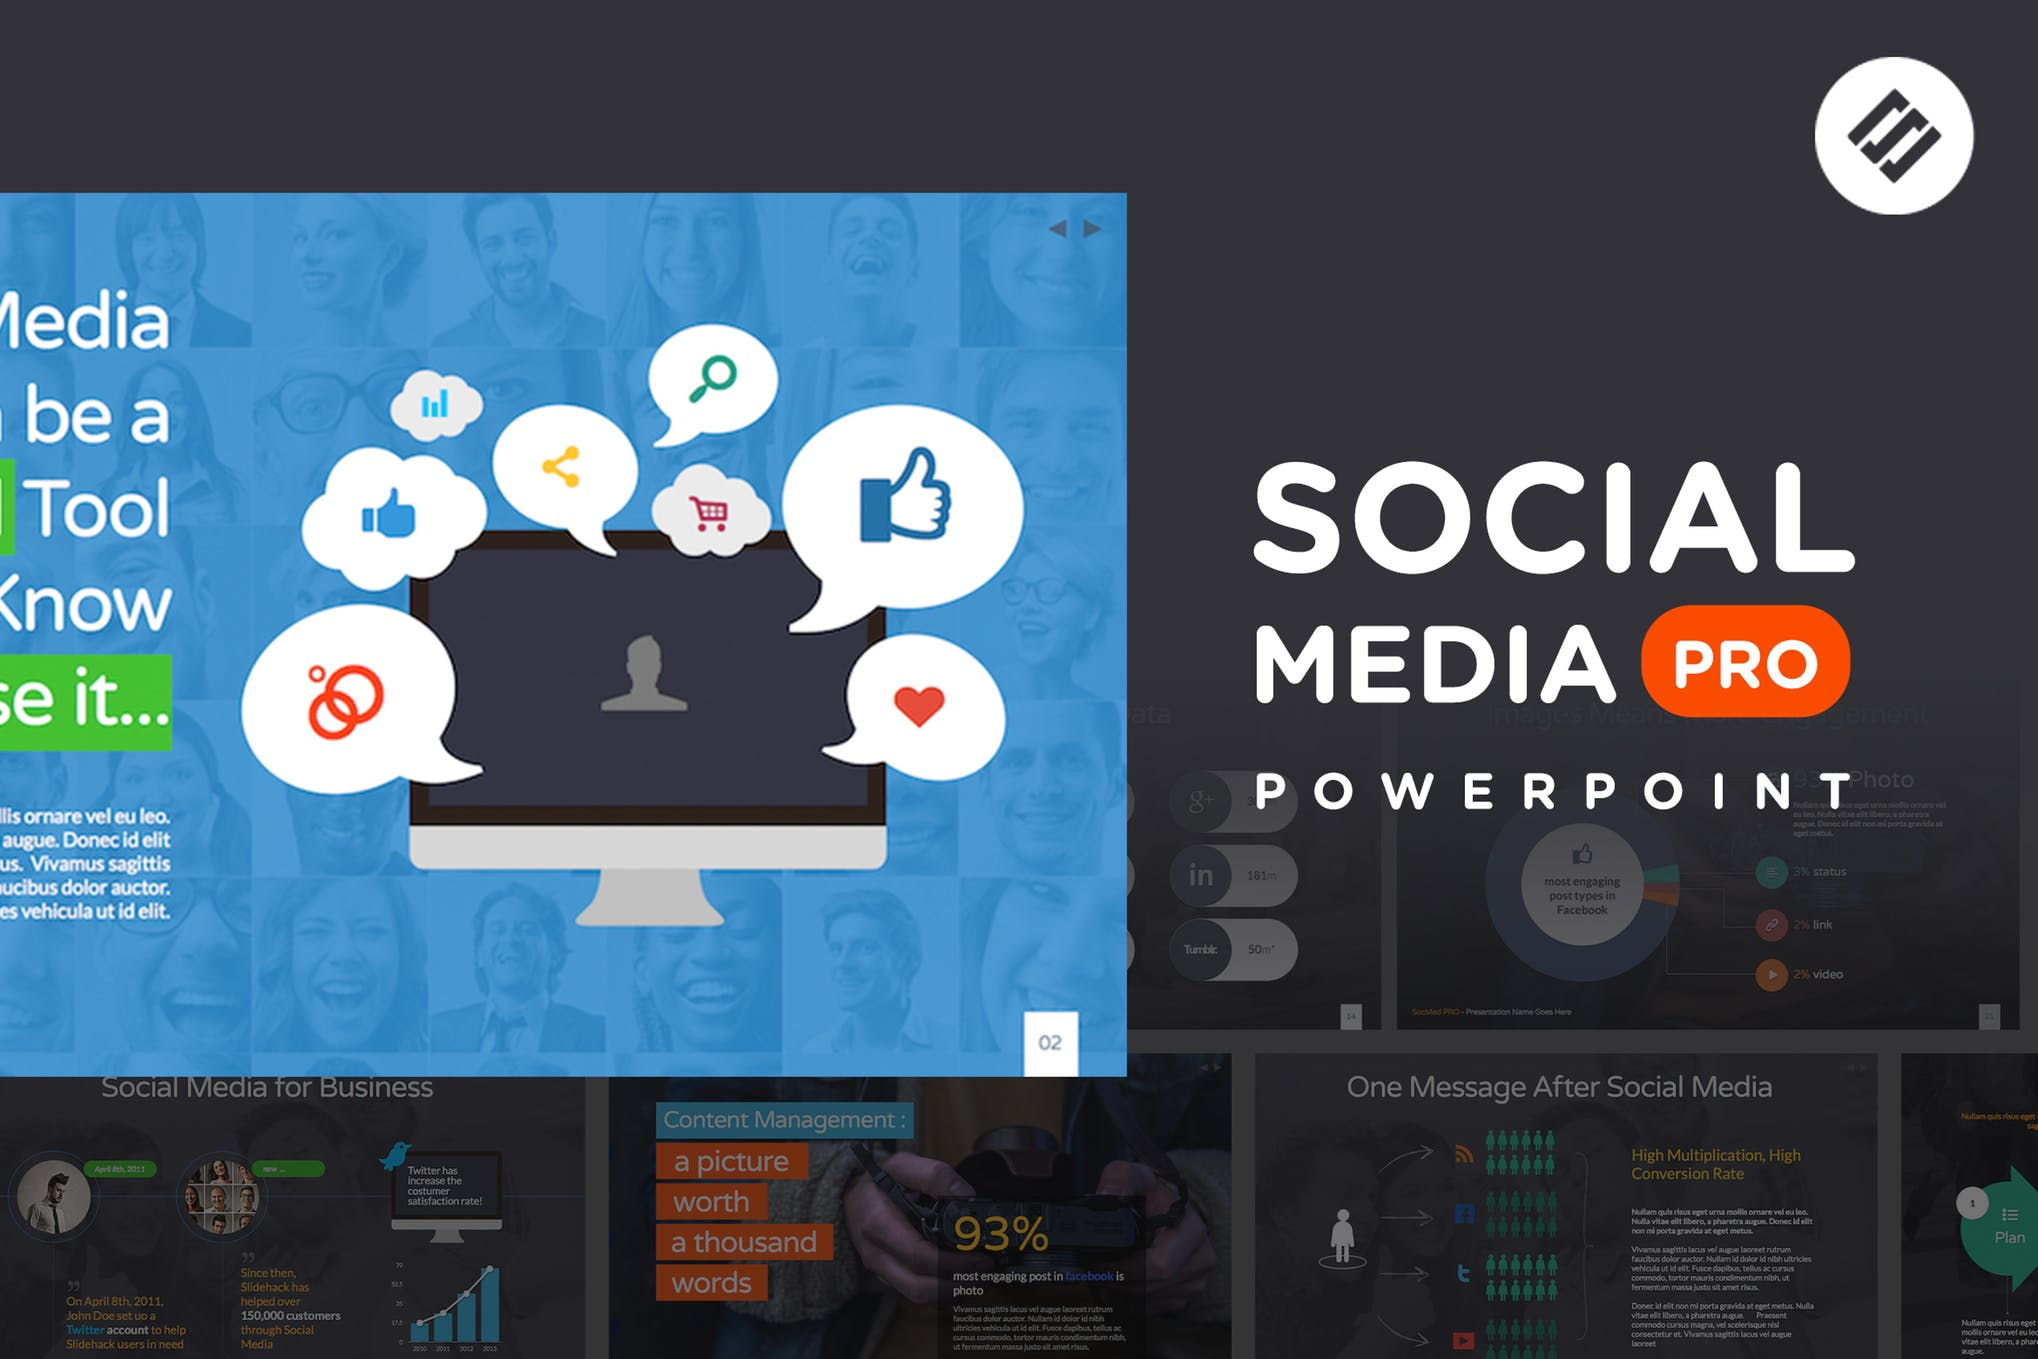 Social Media PRO - Powerpoint Template